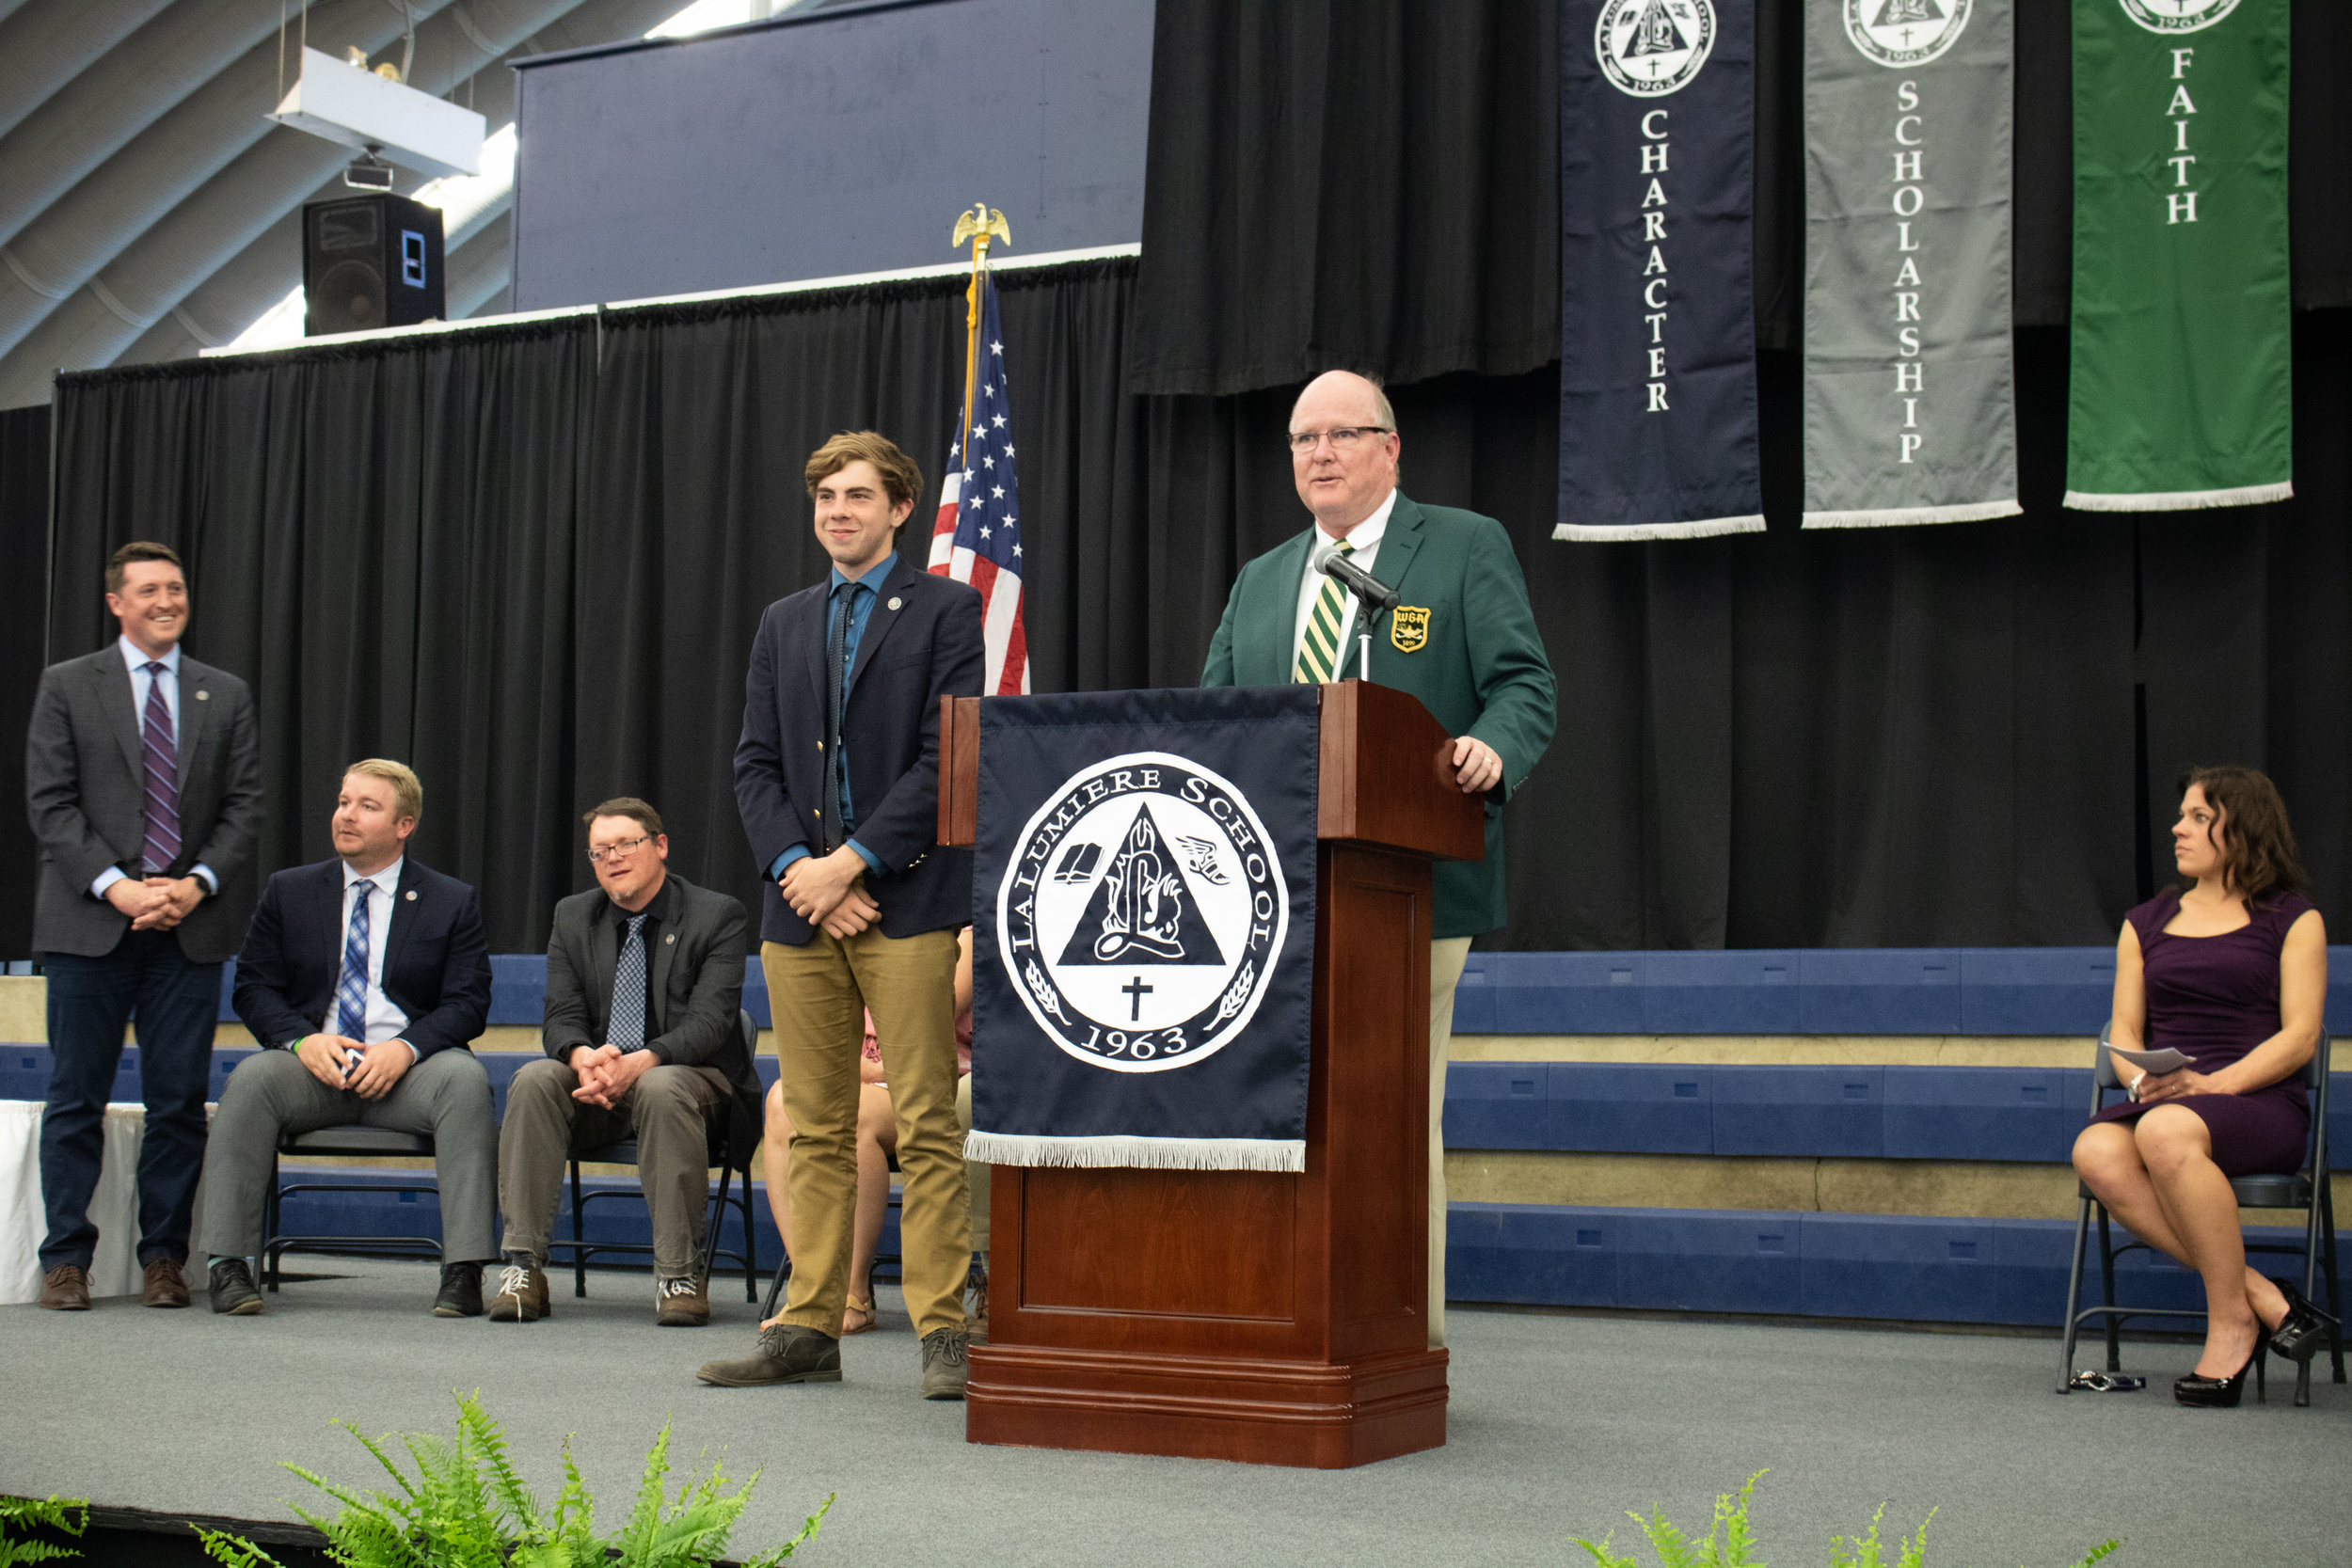 Ben Ruszkowski '19 is the recipient of a Chick Evans Scholarship for Caddies